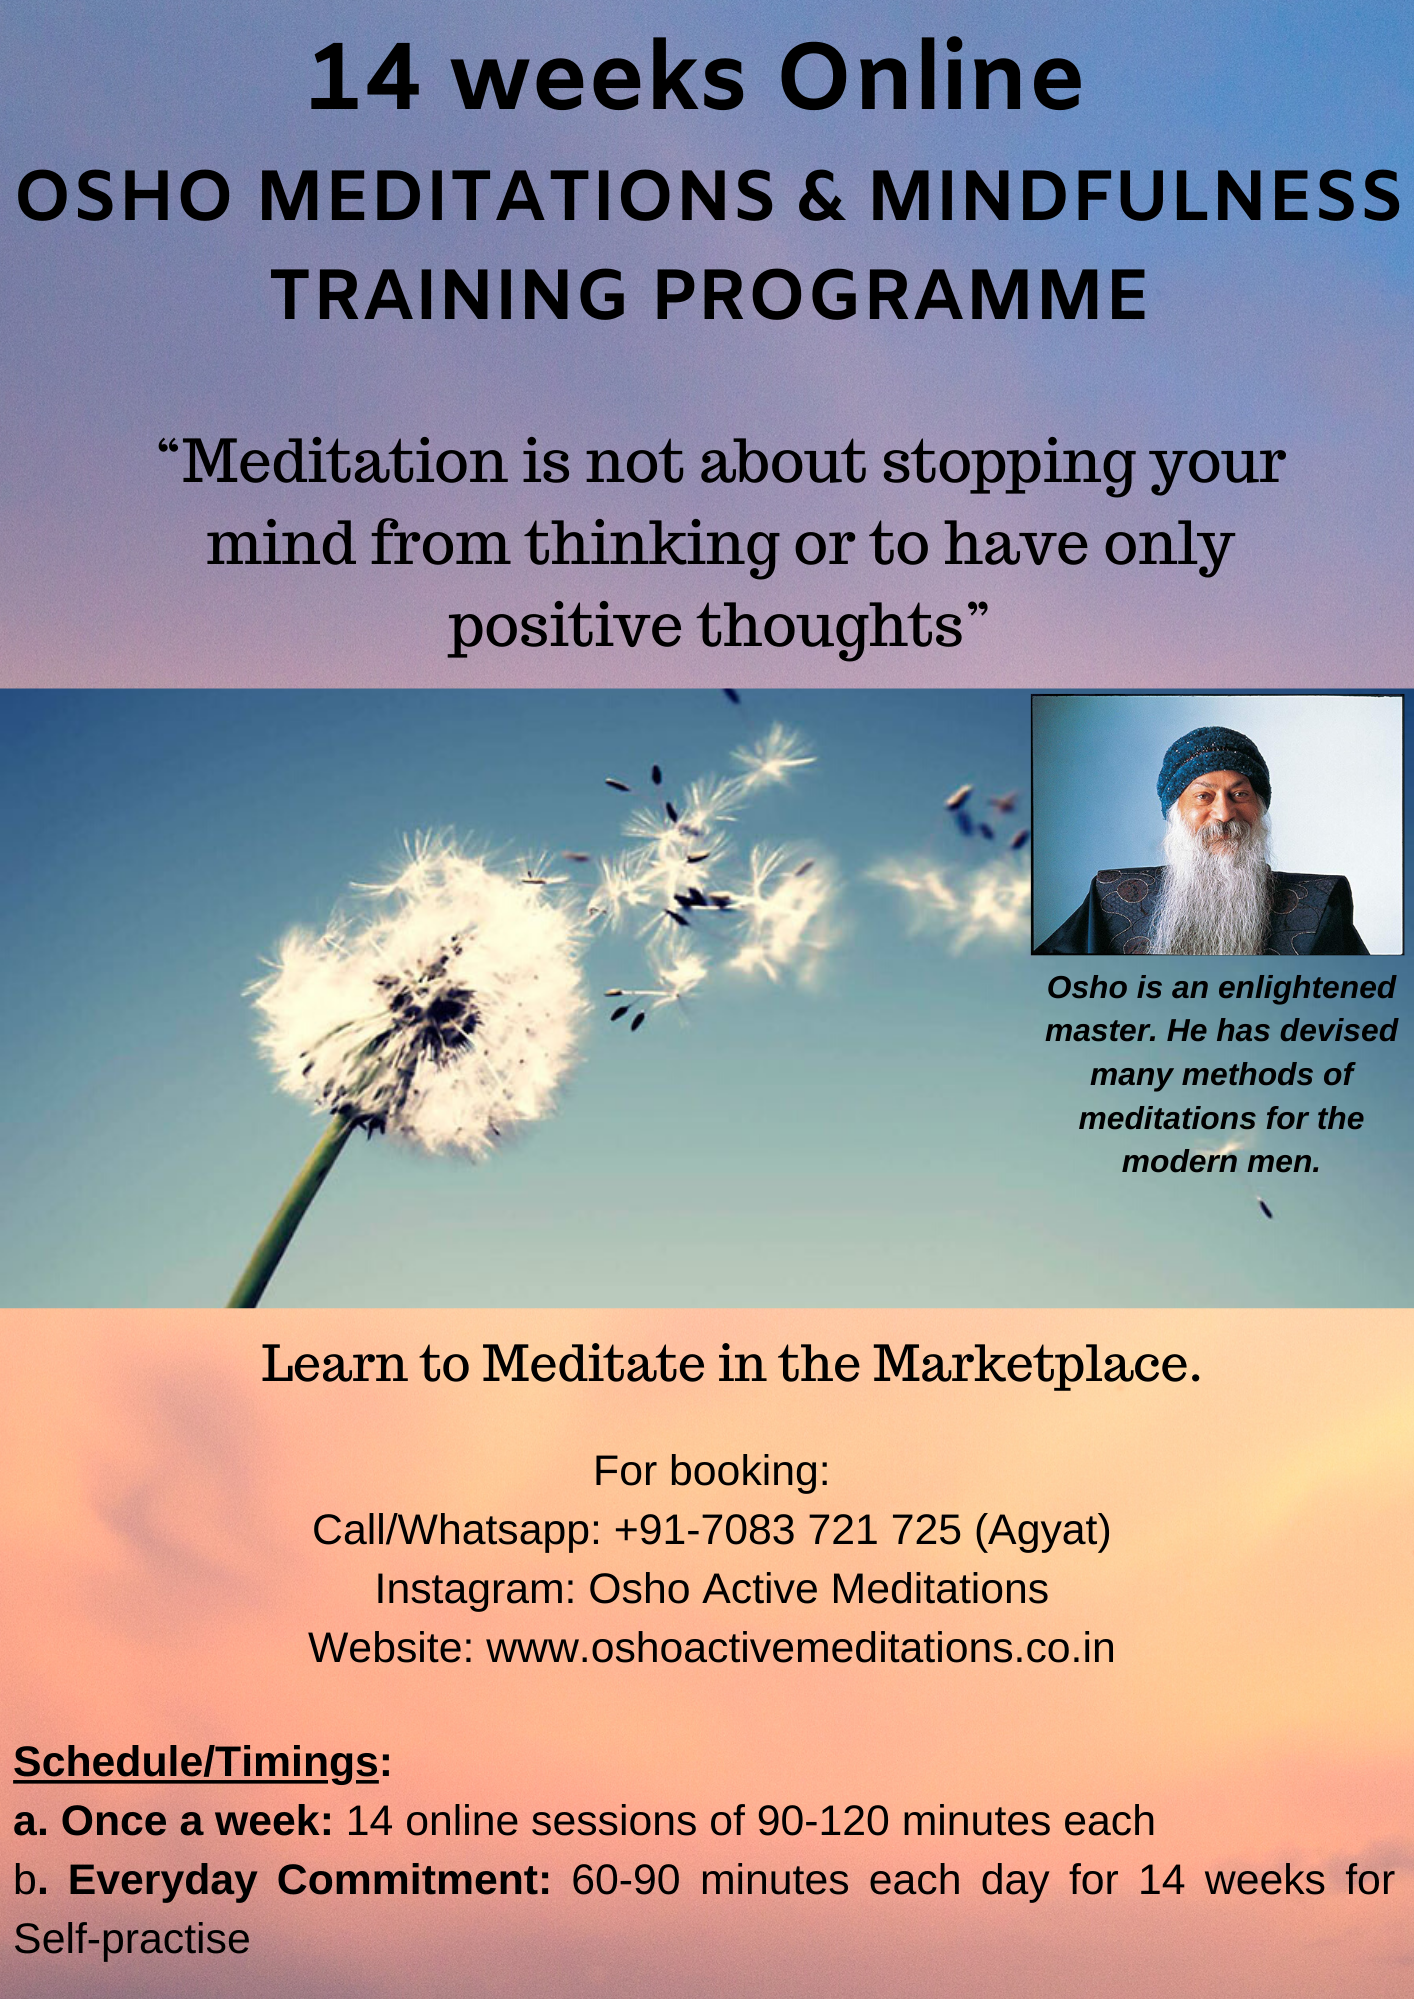 14 weeks online - Osho Meditations and Mindfulness Training Programme - Pic